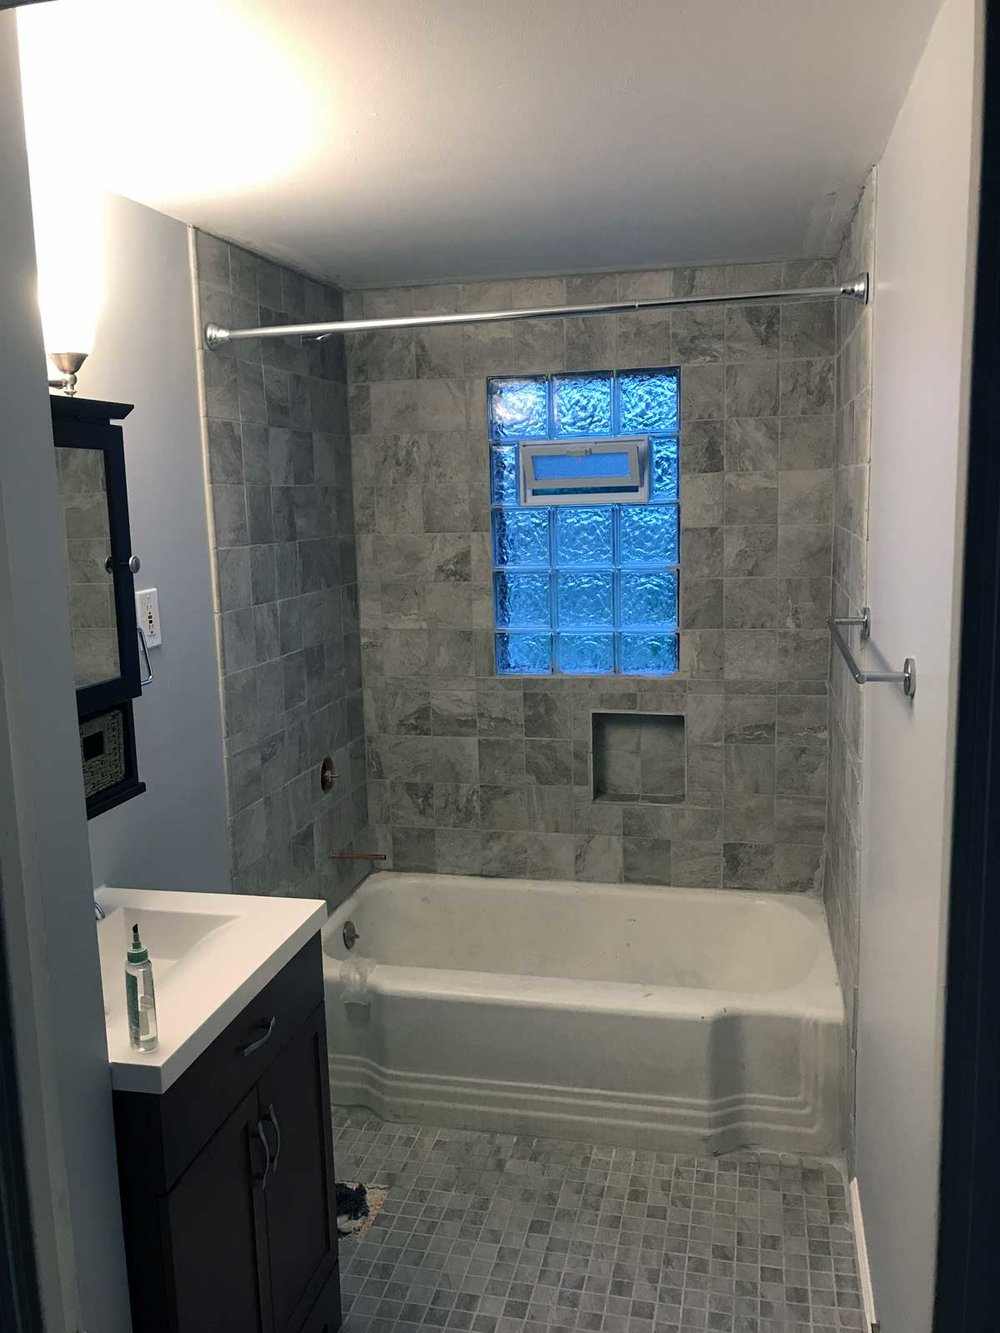 15 Day Bathroom Renovation Finishes 02